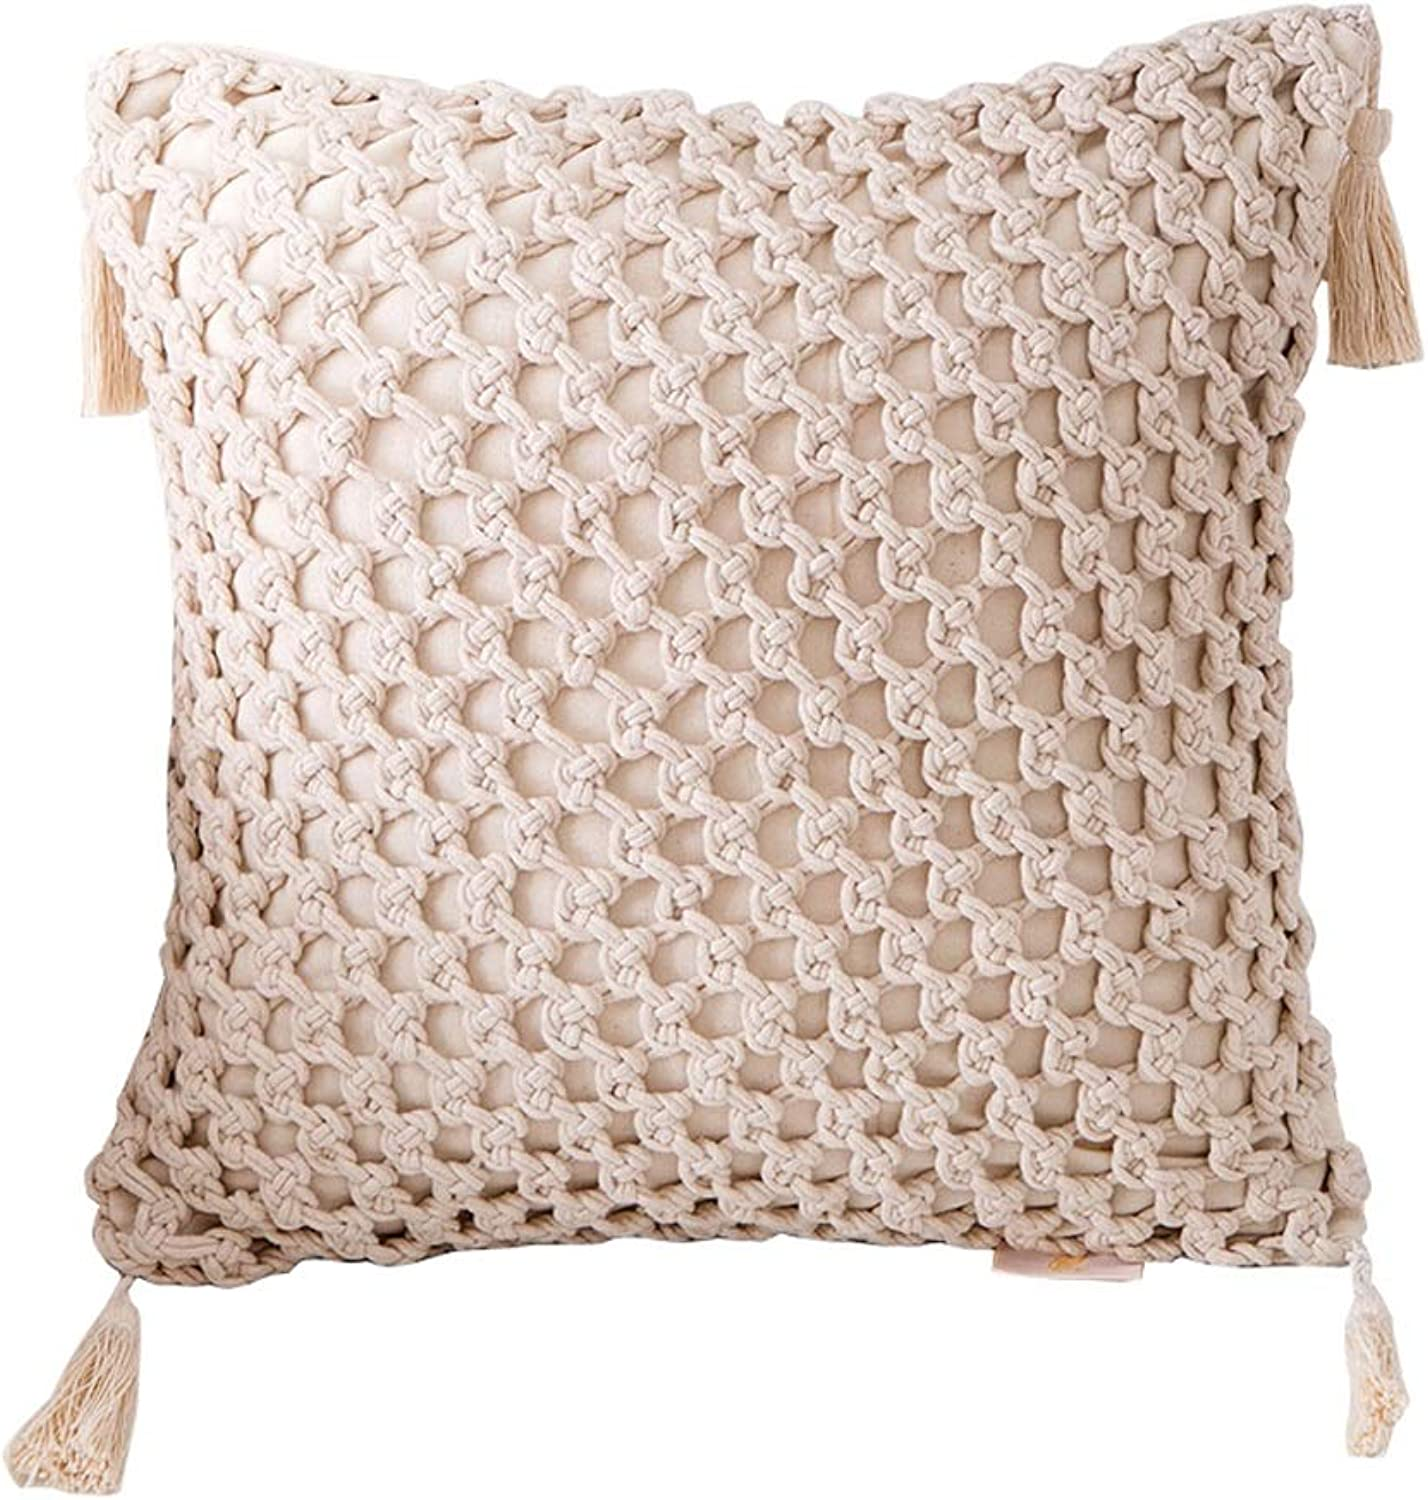 QYSZYG Pillow Hand-Woven Tassel Hug Pillowcase with Core Sofa Cushion Home Living Room Decoration Pillow (color   A)